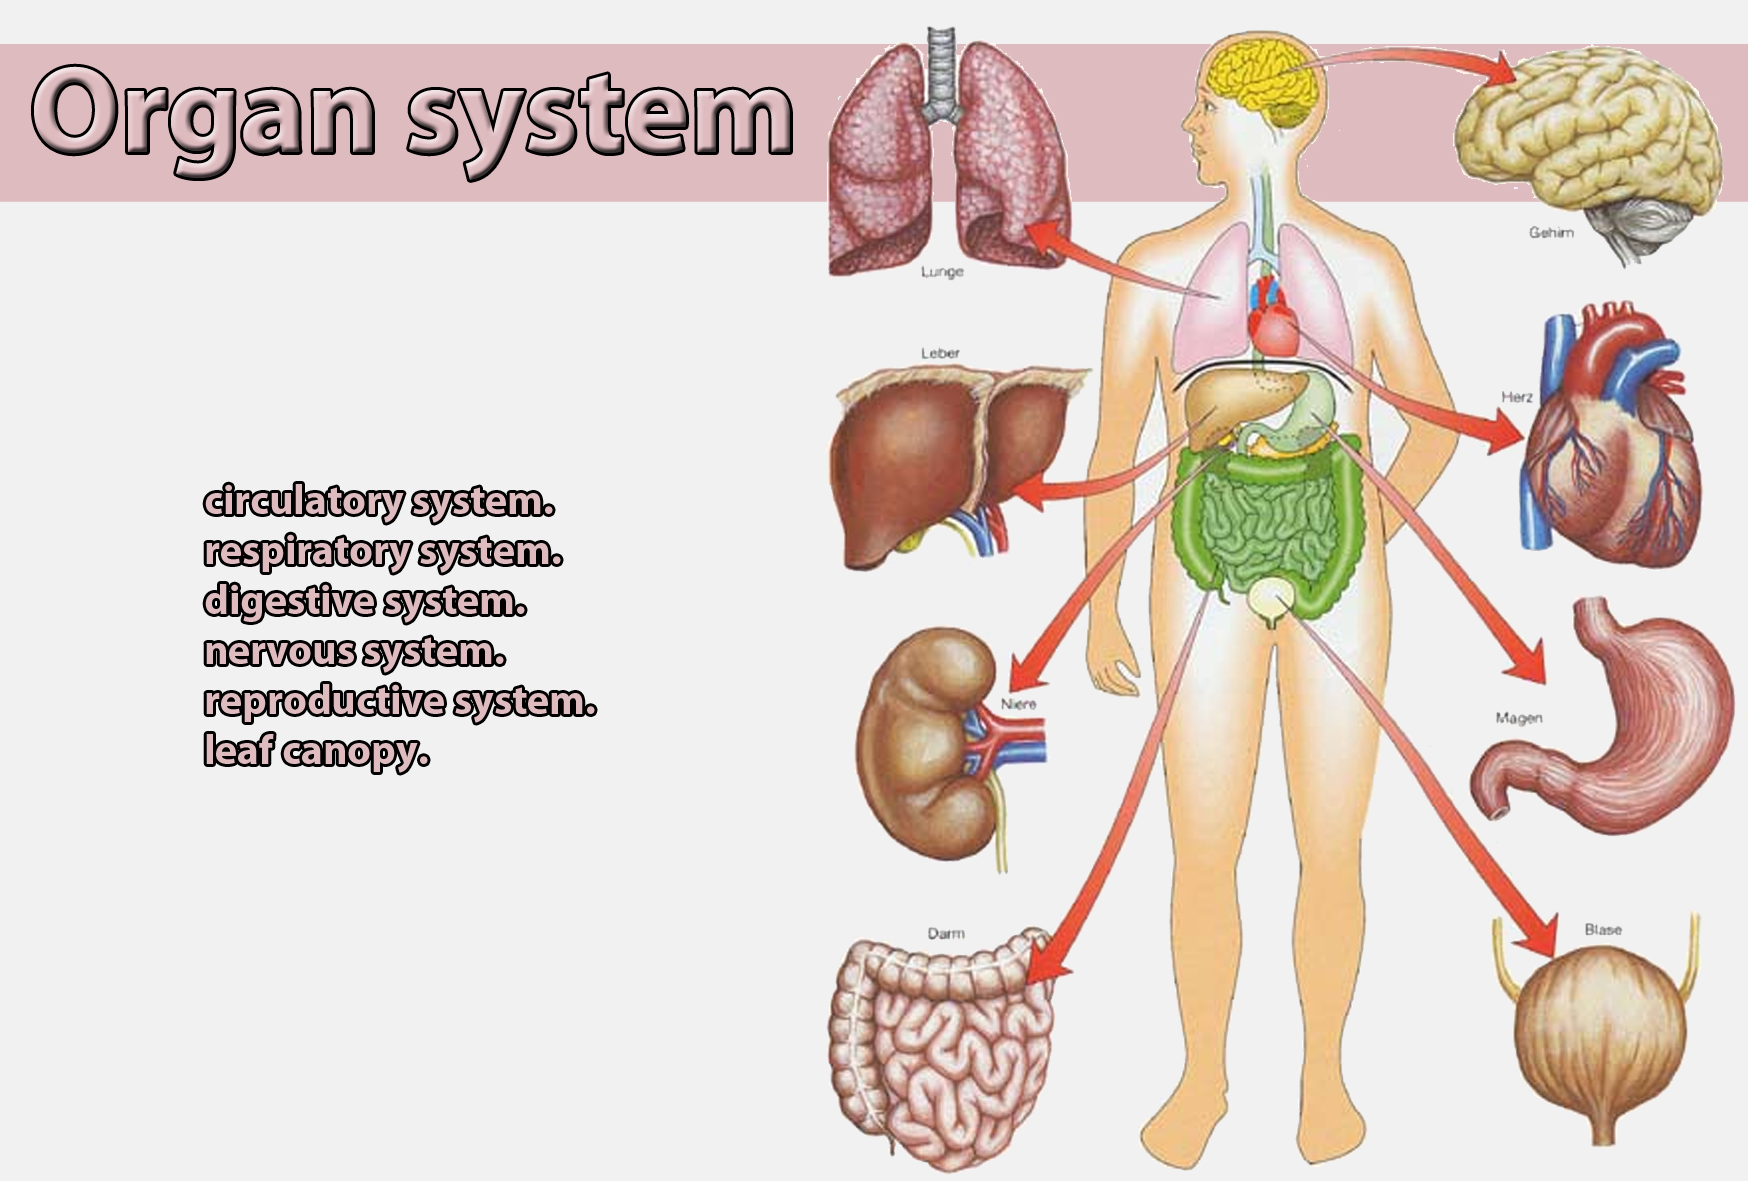 Pictures of organ systems in the body